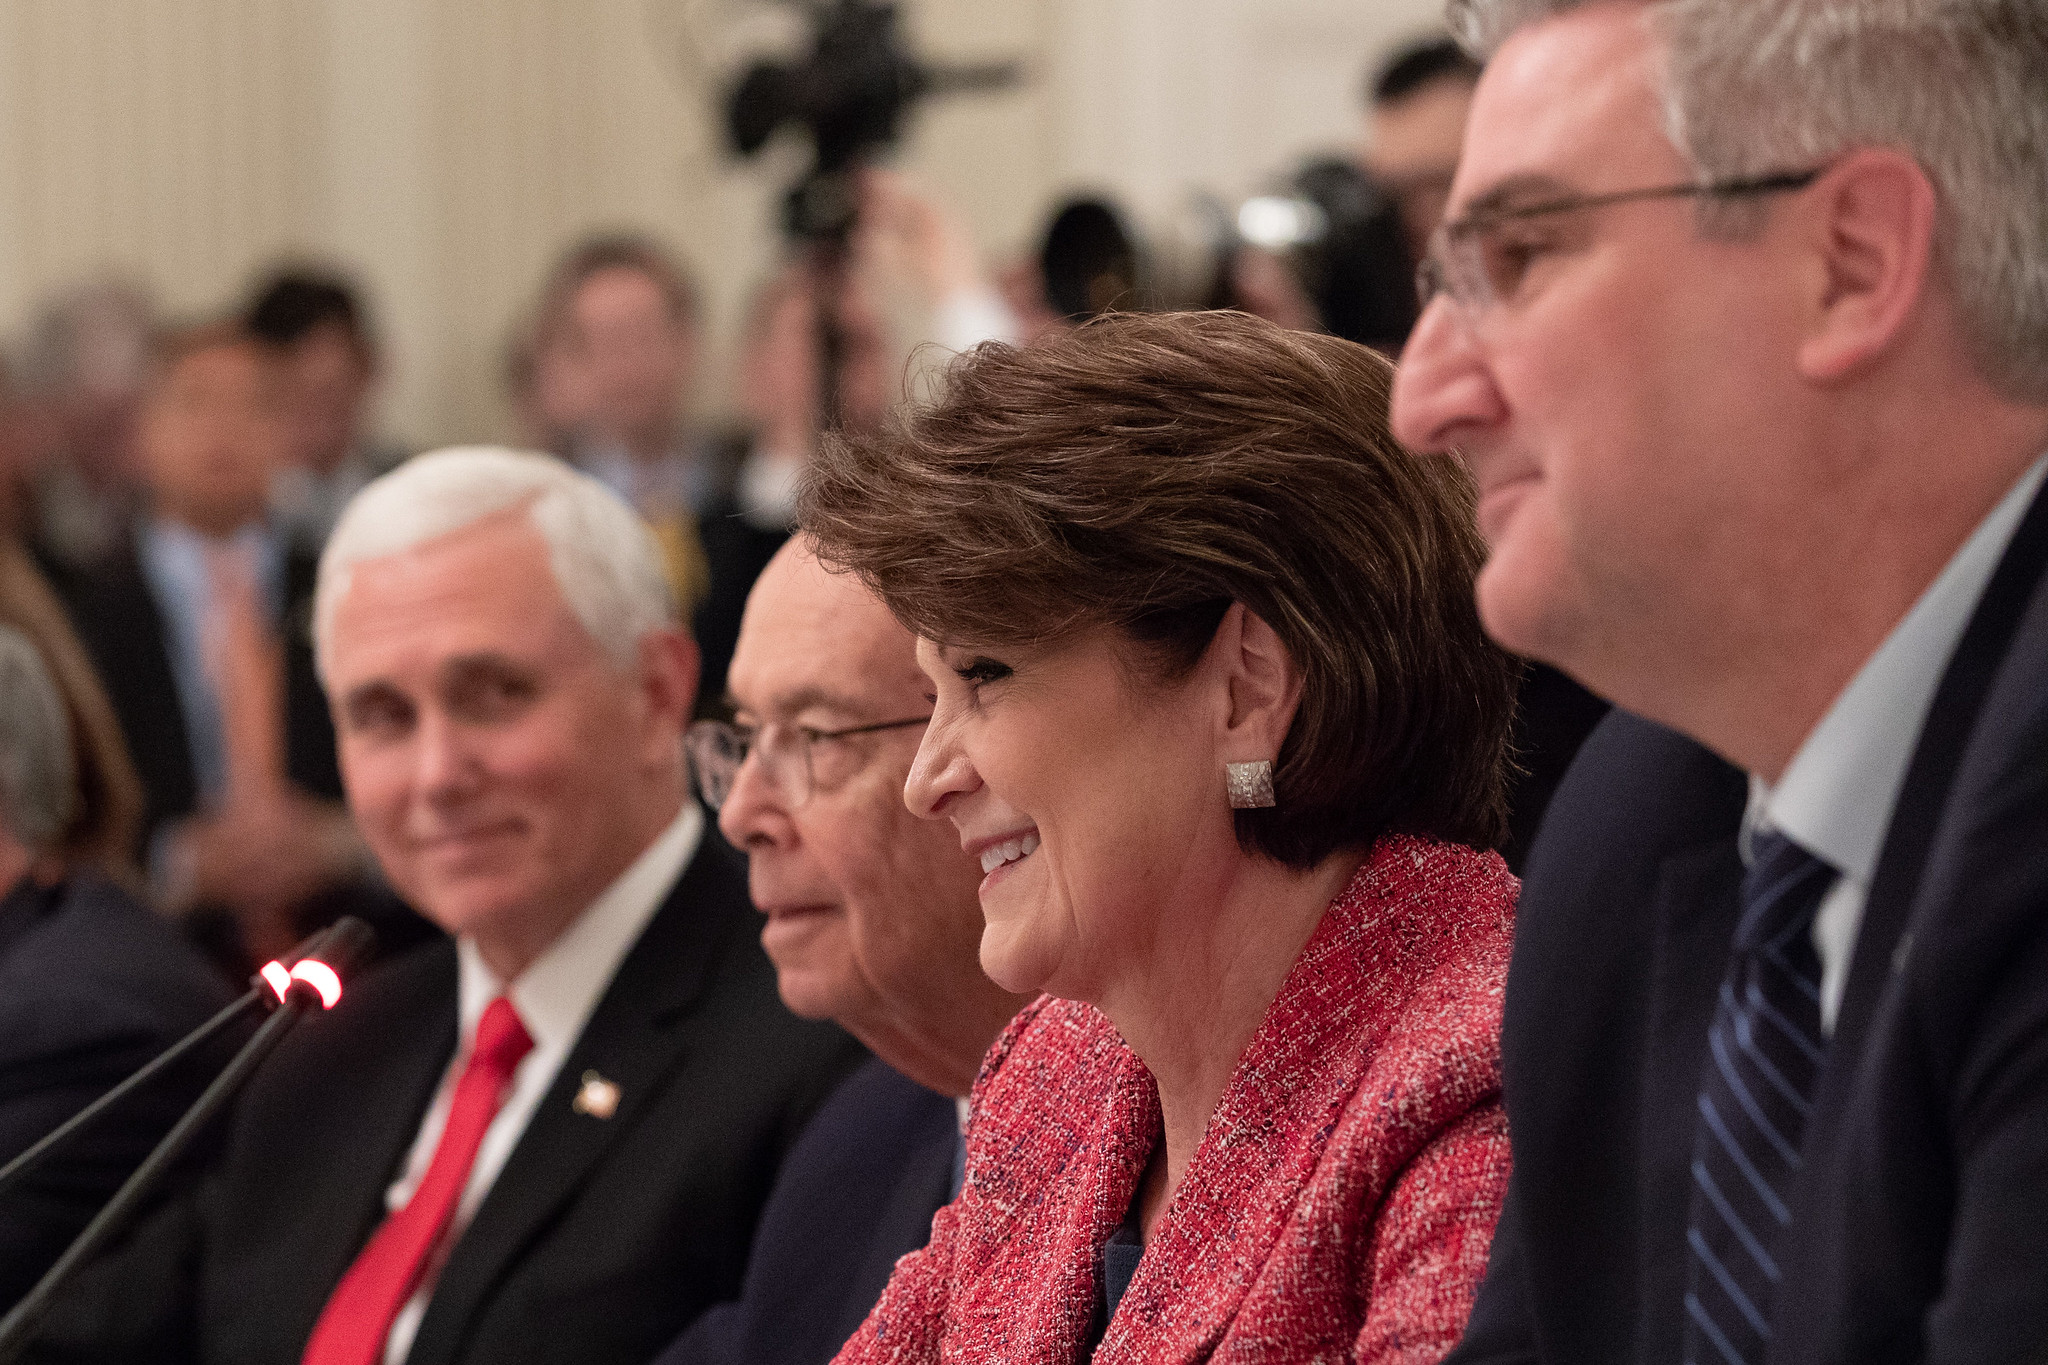 Marillyn Hewson, CEO of Lockheed Martin, at White House meeting March 6, 2019. (White House, Joyce N. Boghosian)